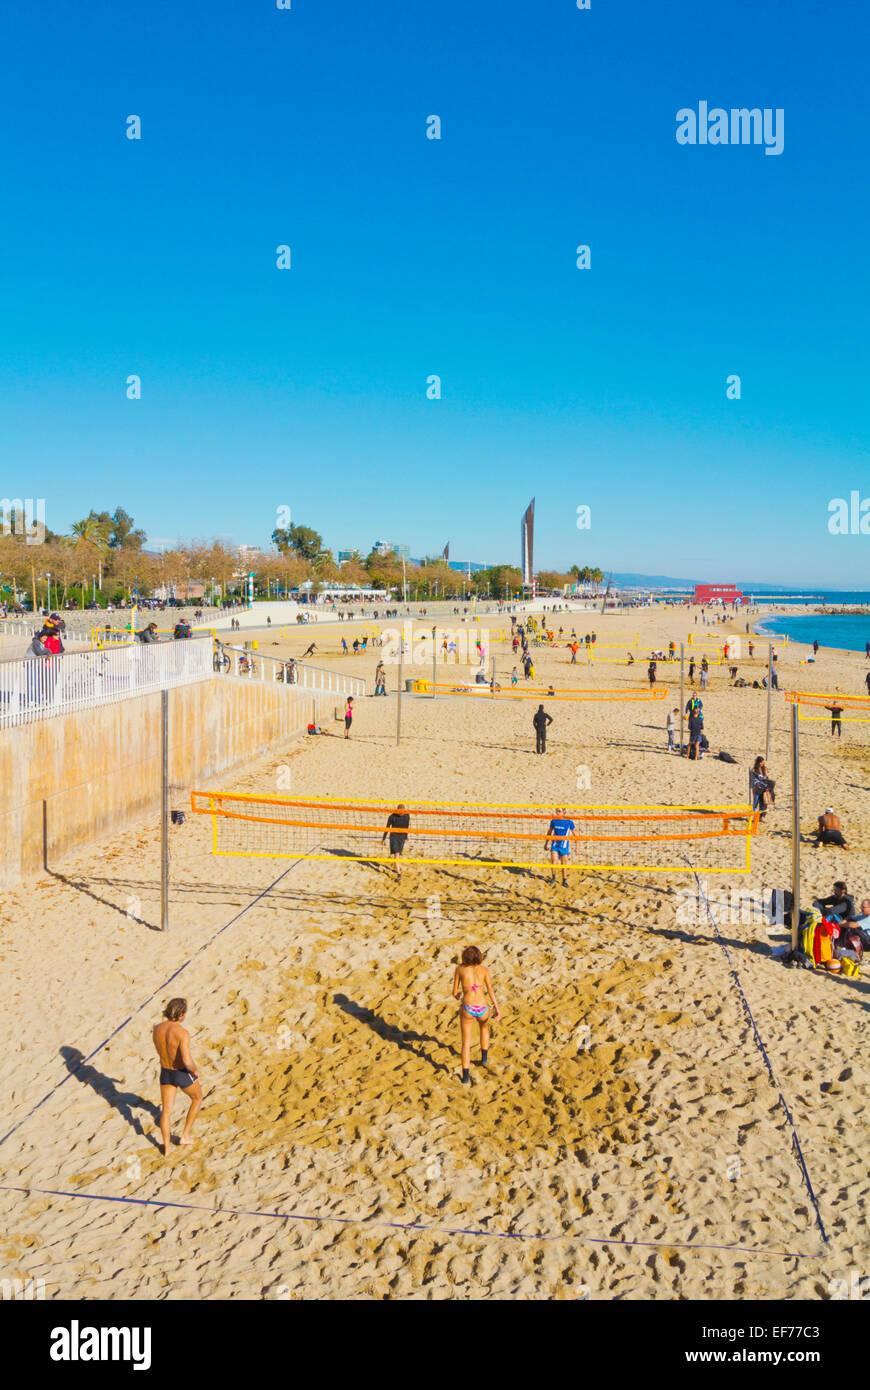 Beach volleyball, Platja Nova Icaria beach, Barcelona, Spain - Stock Image